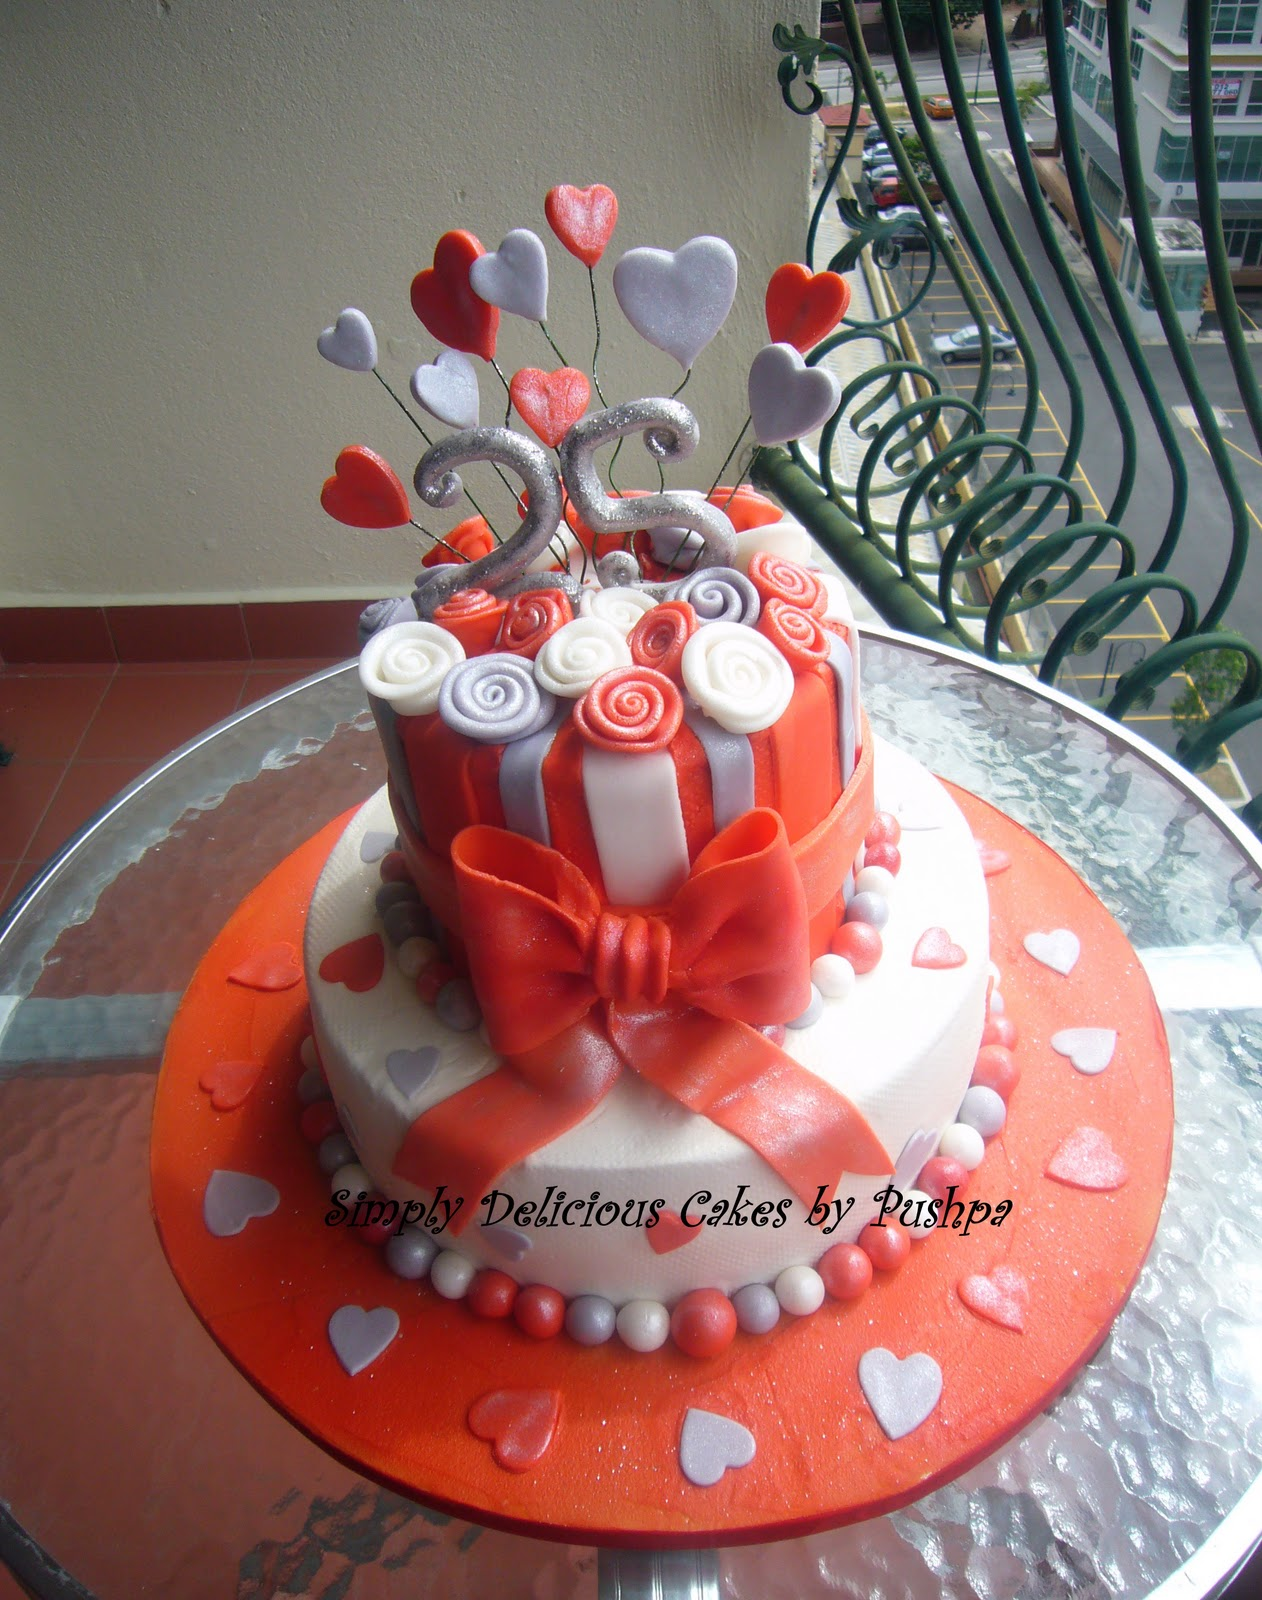 SIMPLY DELICIOUS CAKES: Silver Jubilee Anniversary